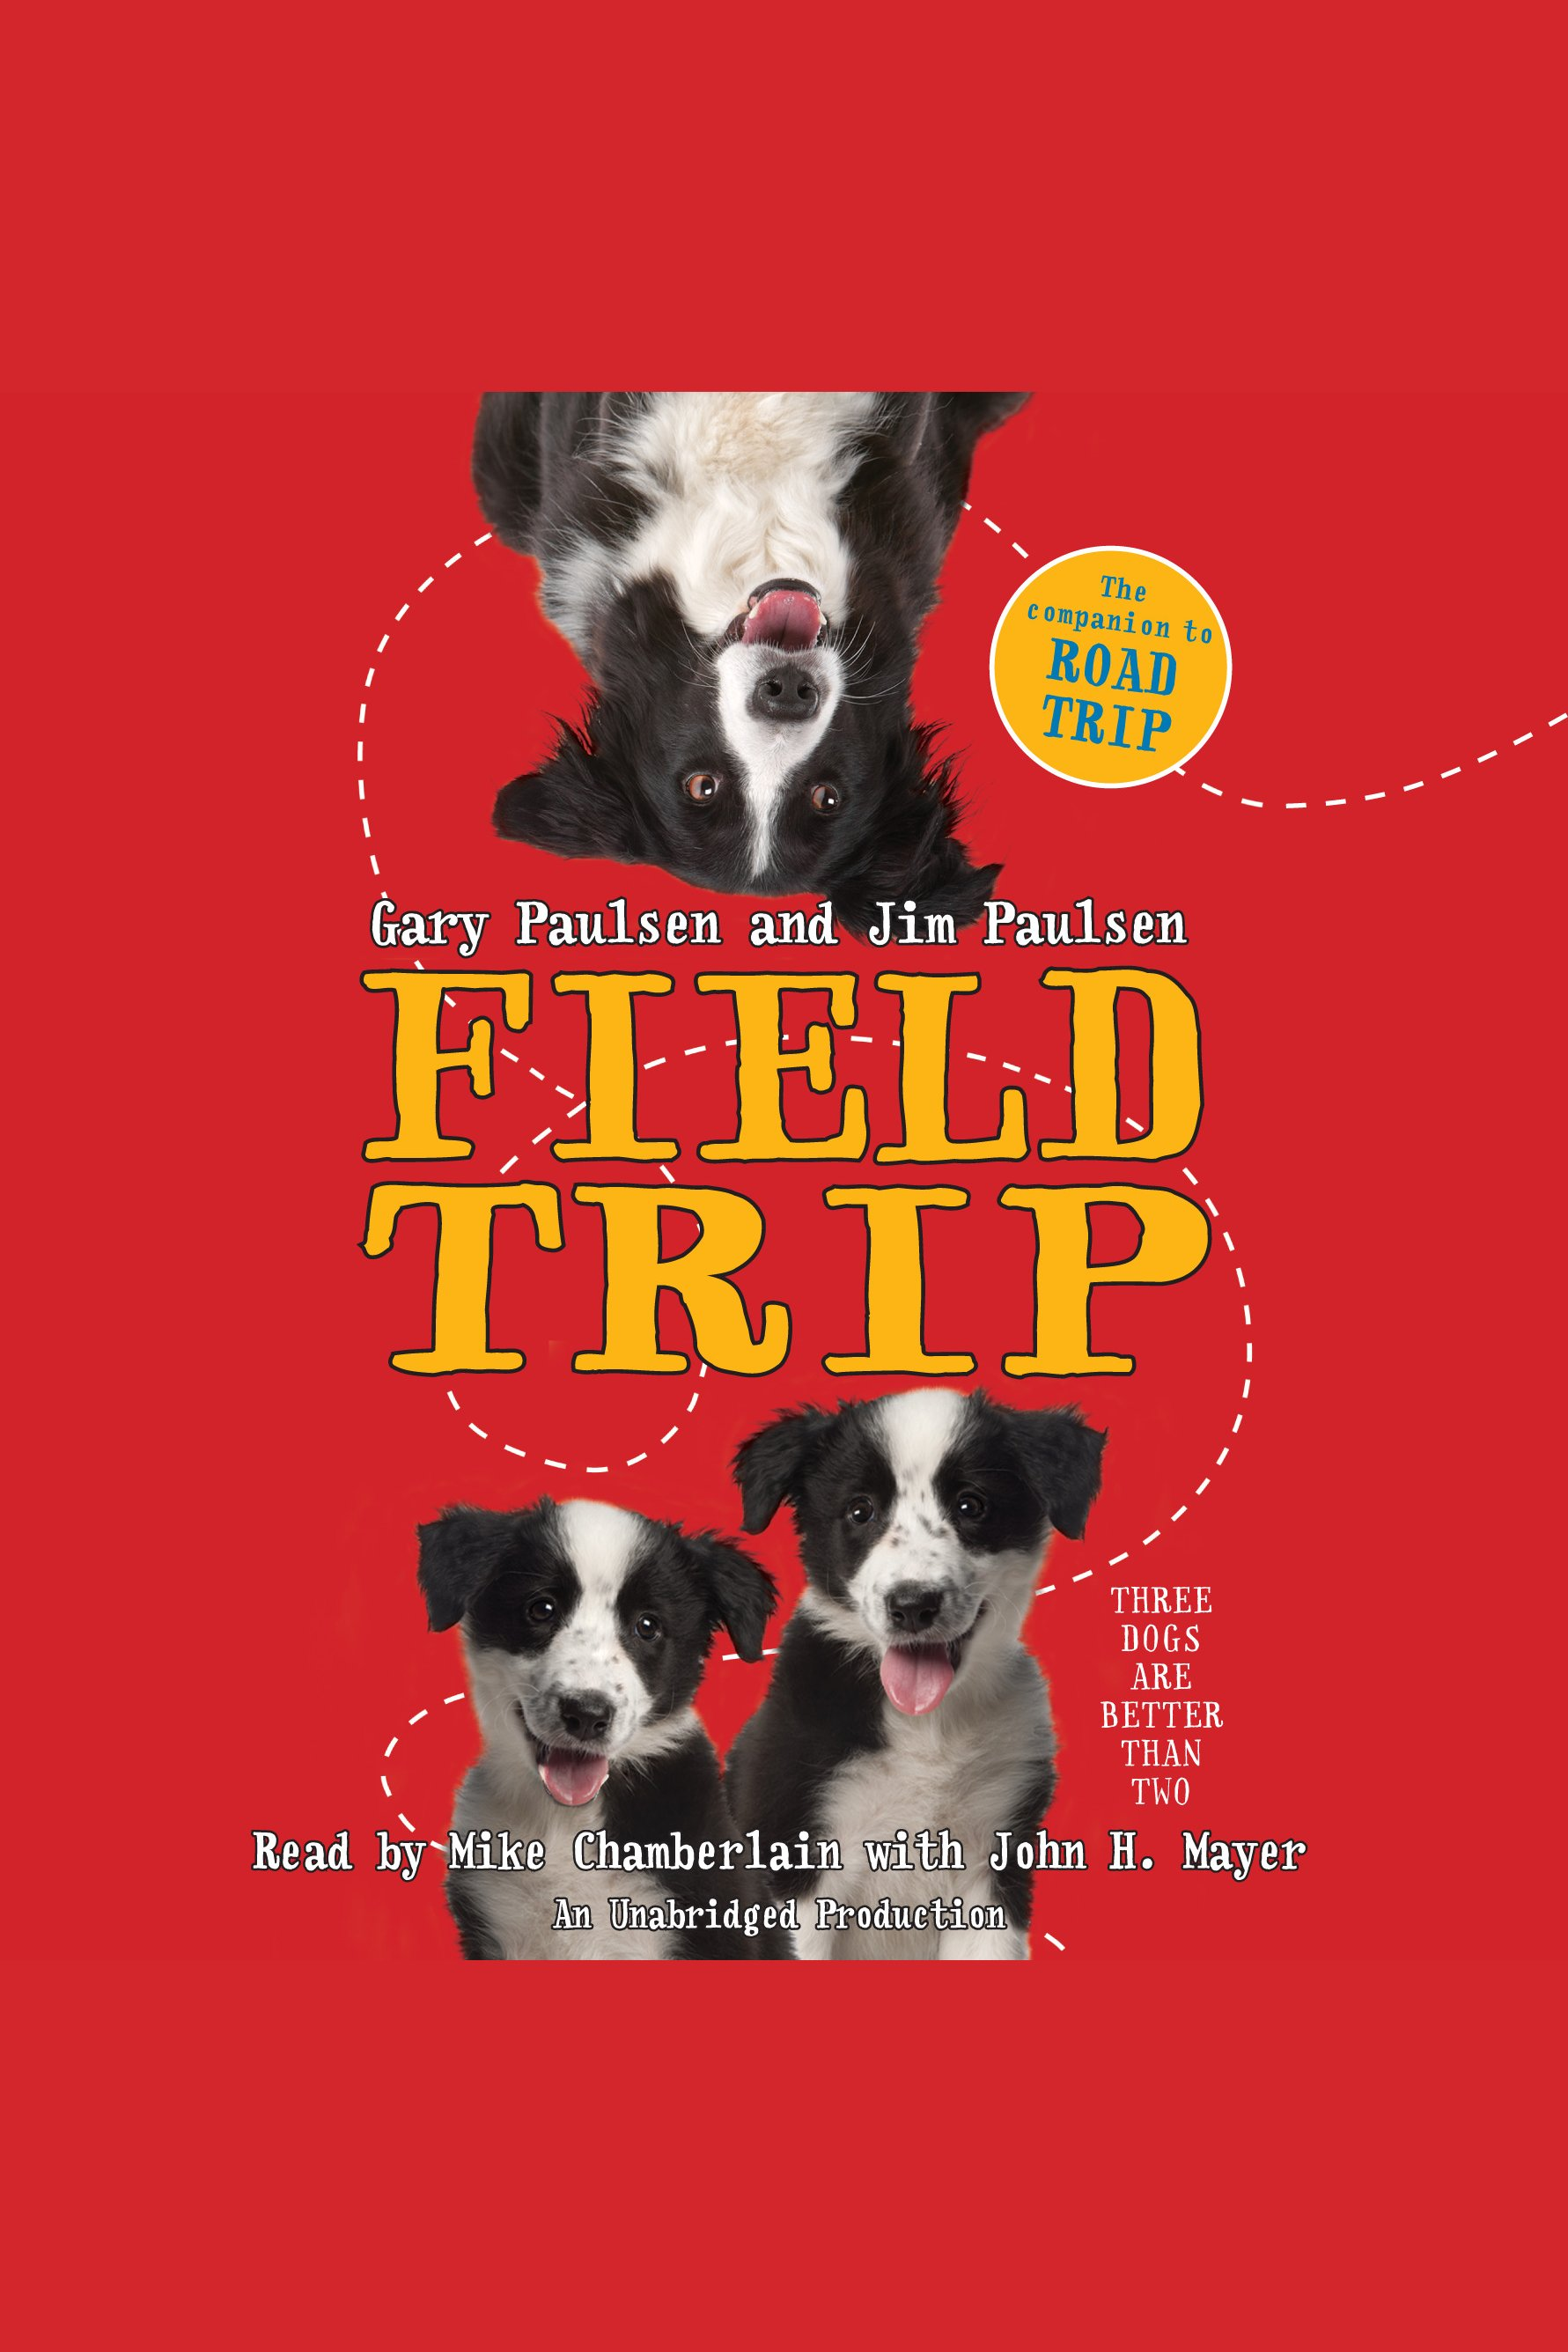 Field trip cover image